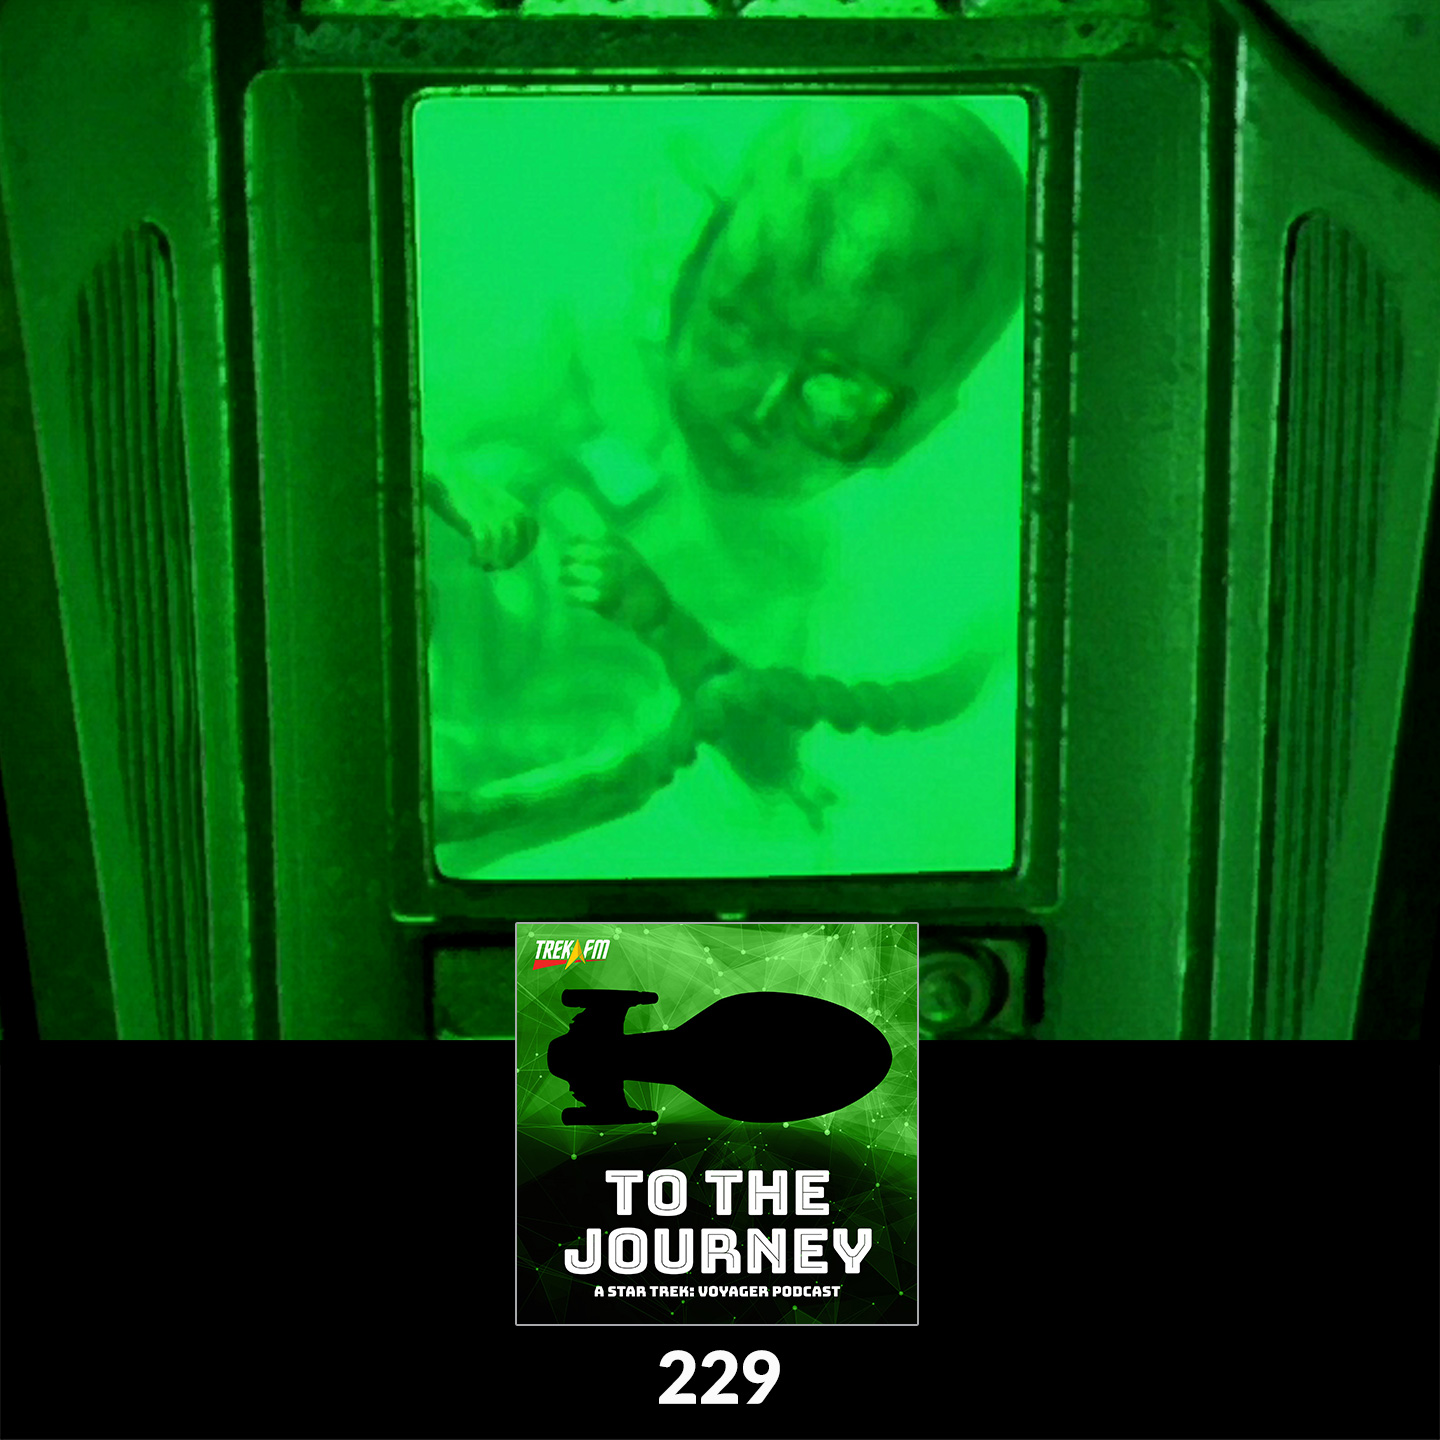 To The Journey 229: The Doctor Gave Me a Pill and I Grew a New Interplexing Beacon - Drone.